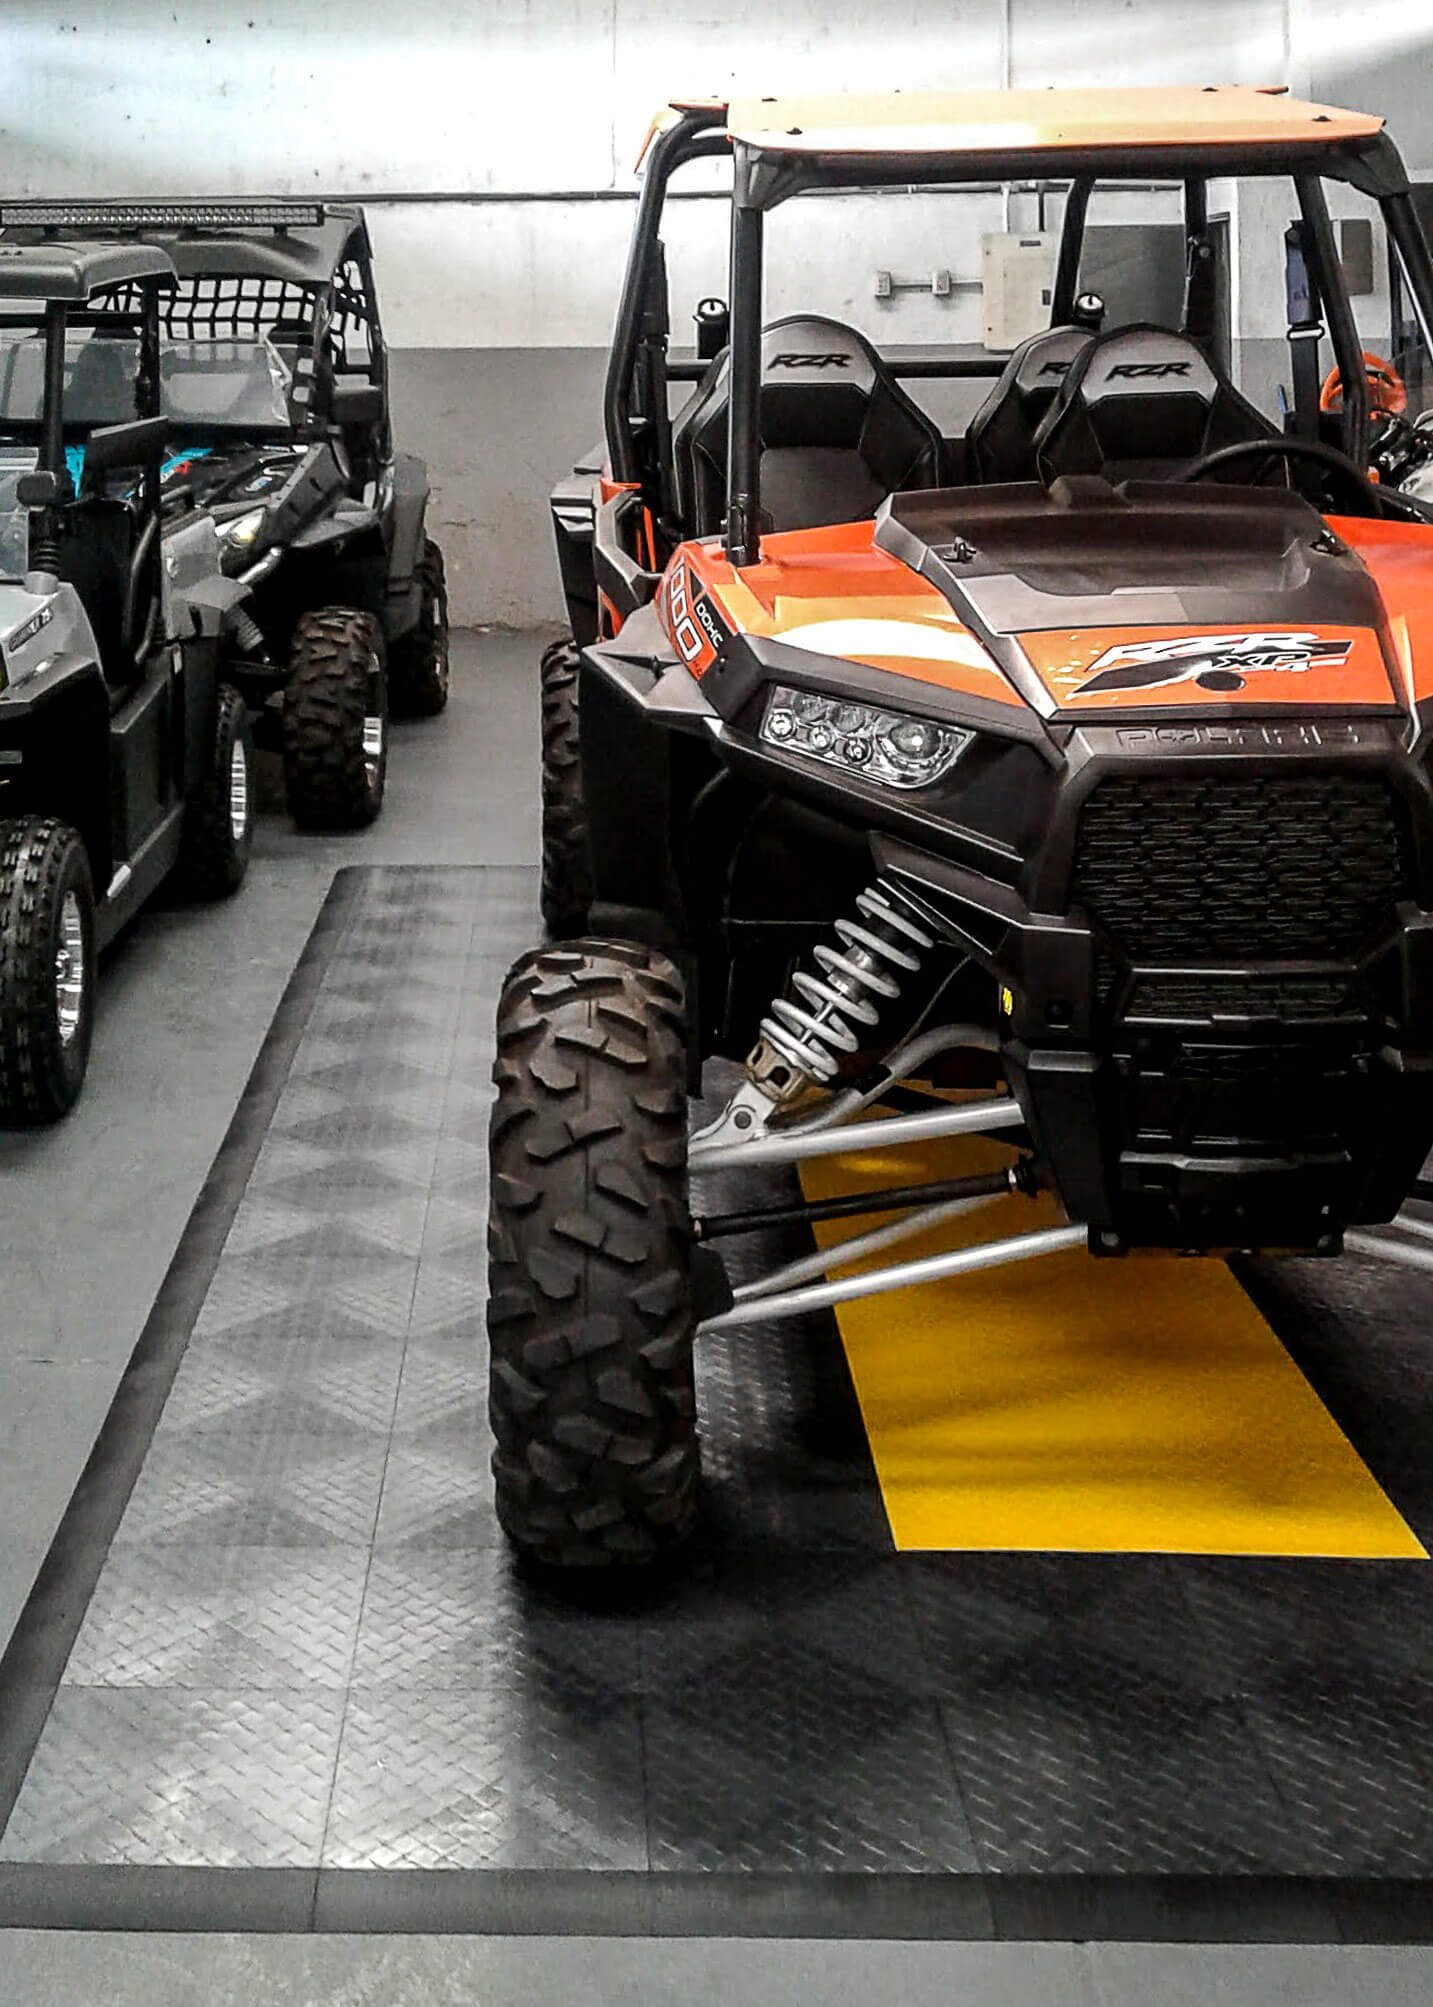 4 Wheelers in a garage with RaceDeck Diamond parking pad